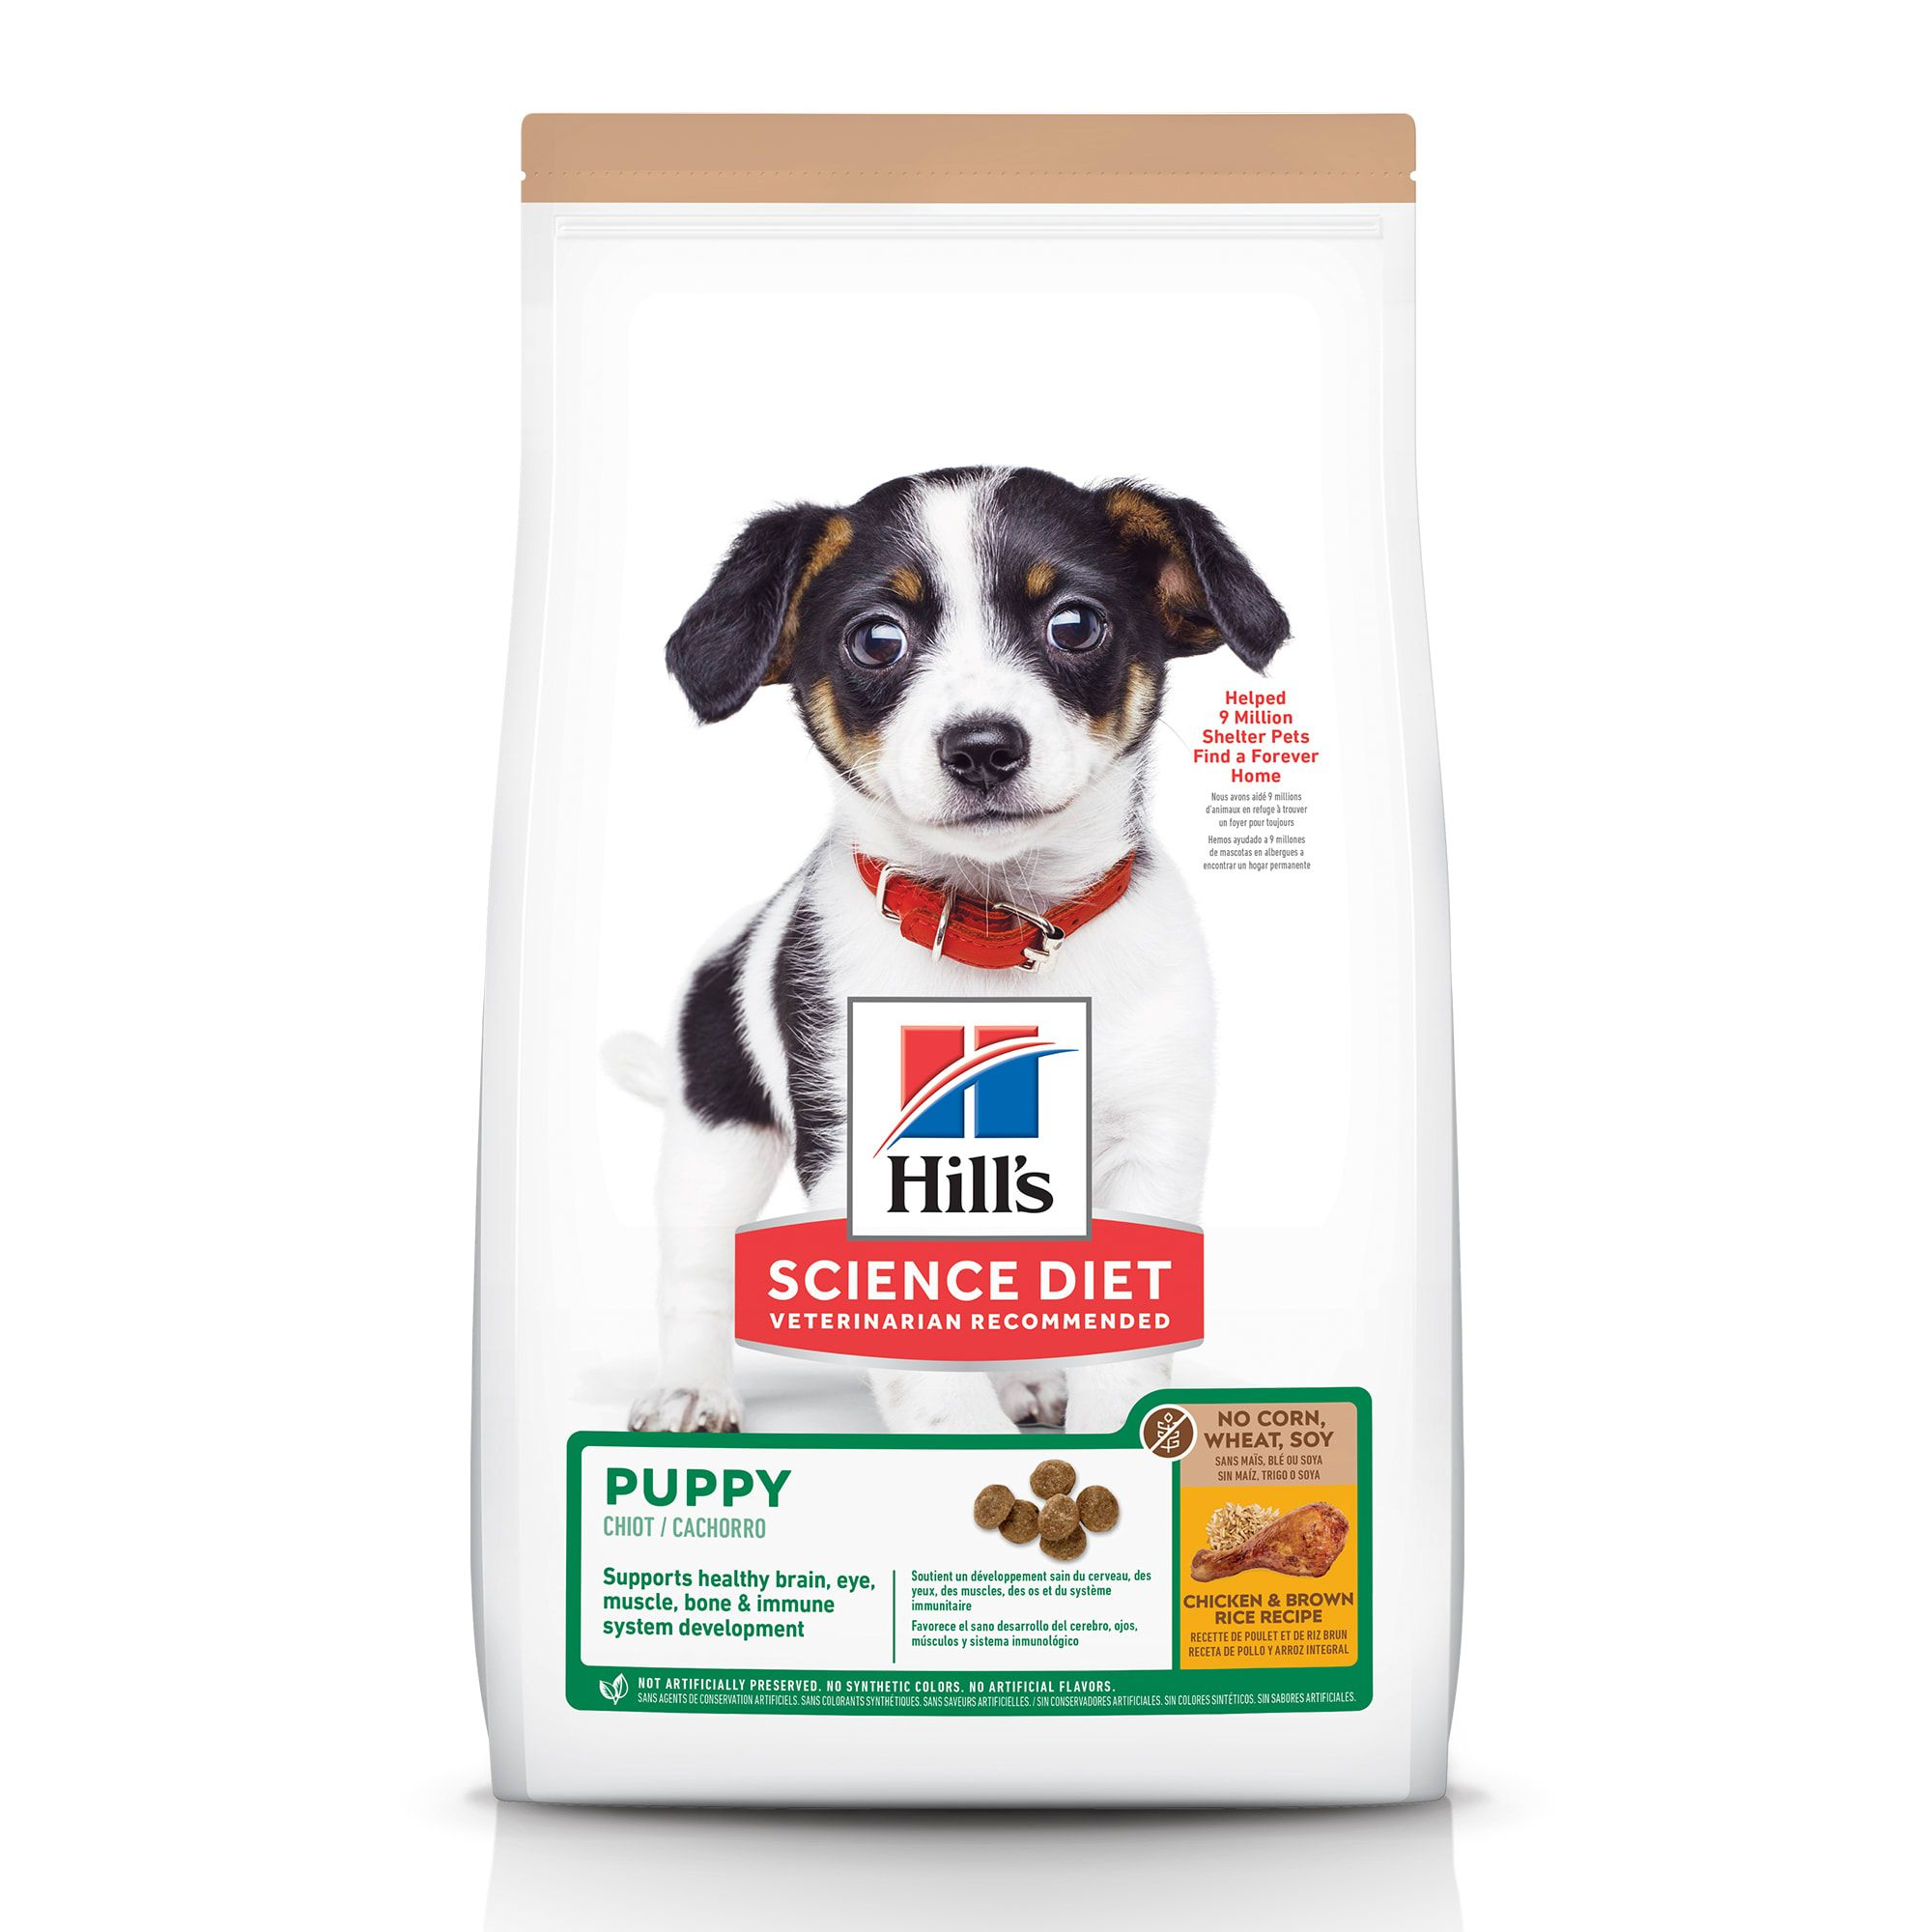 Hill S Science Diet No Corn Wheat Or Soy Chicken Dry Puppy Food 12 5 Lbs Bag Petco In 2021 Hills Science Diet Science Diet Chicken And Brown Rice